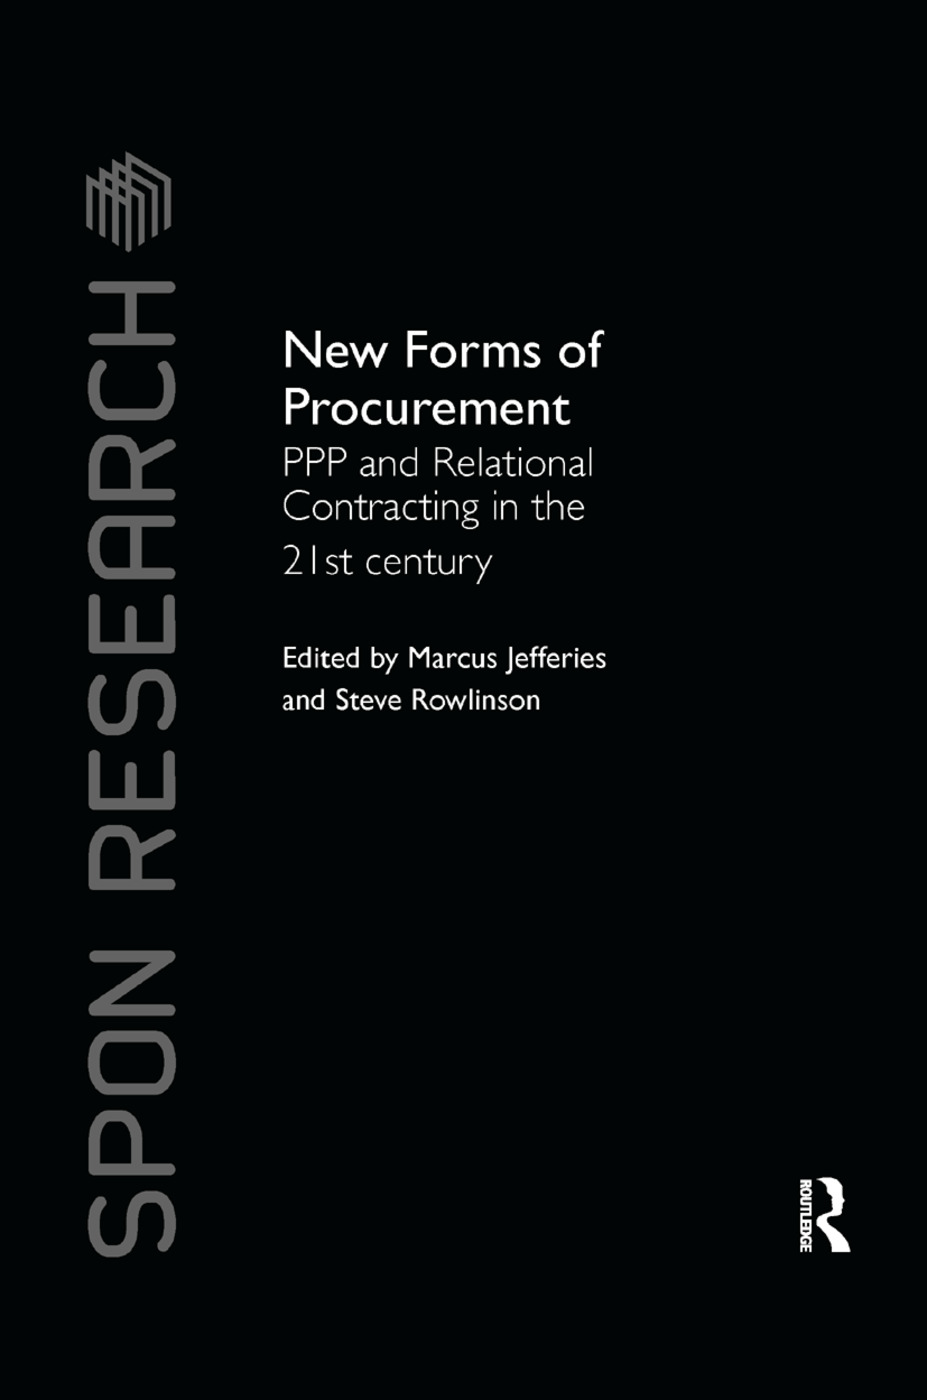 New Forms of Procurement: PPP and Relational Contracting in the 21st Century book cover